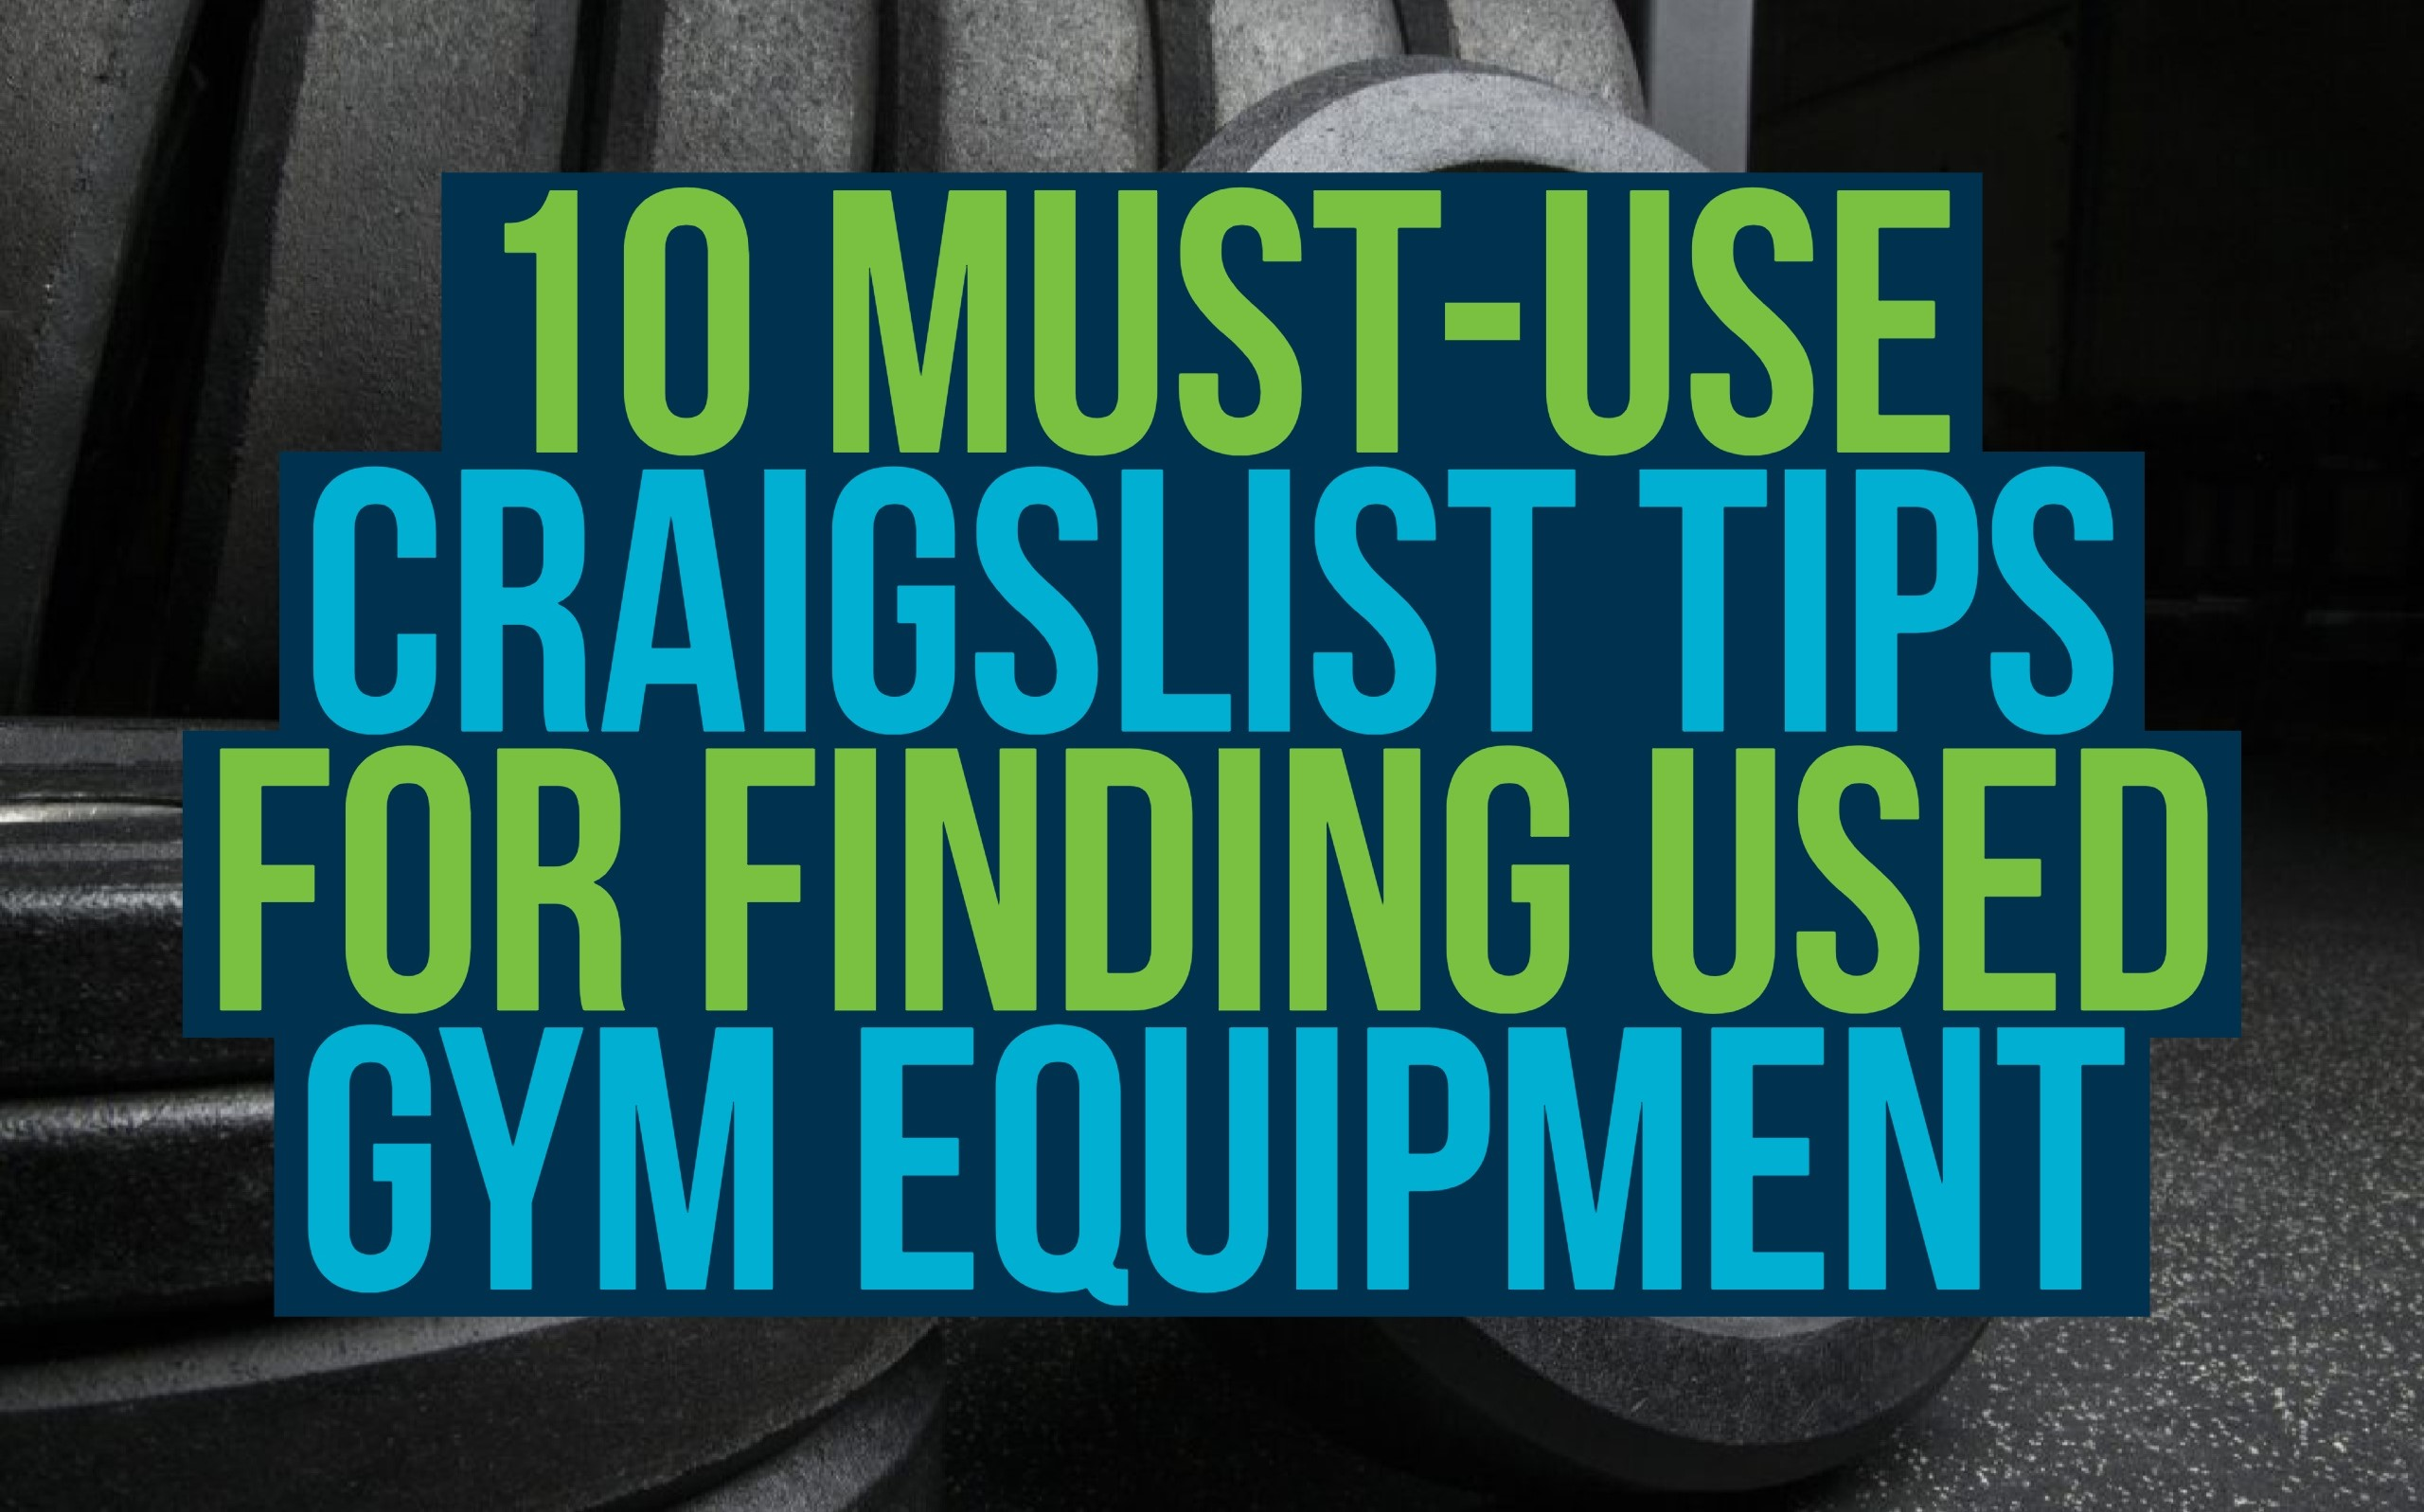 Garage Gym Reviews Diy Platform 10 Must Use Craigslist Tips For Finding Used Gym Equipment